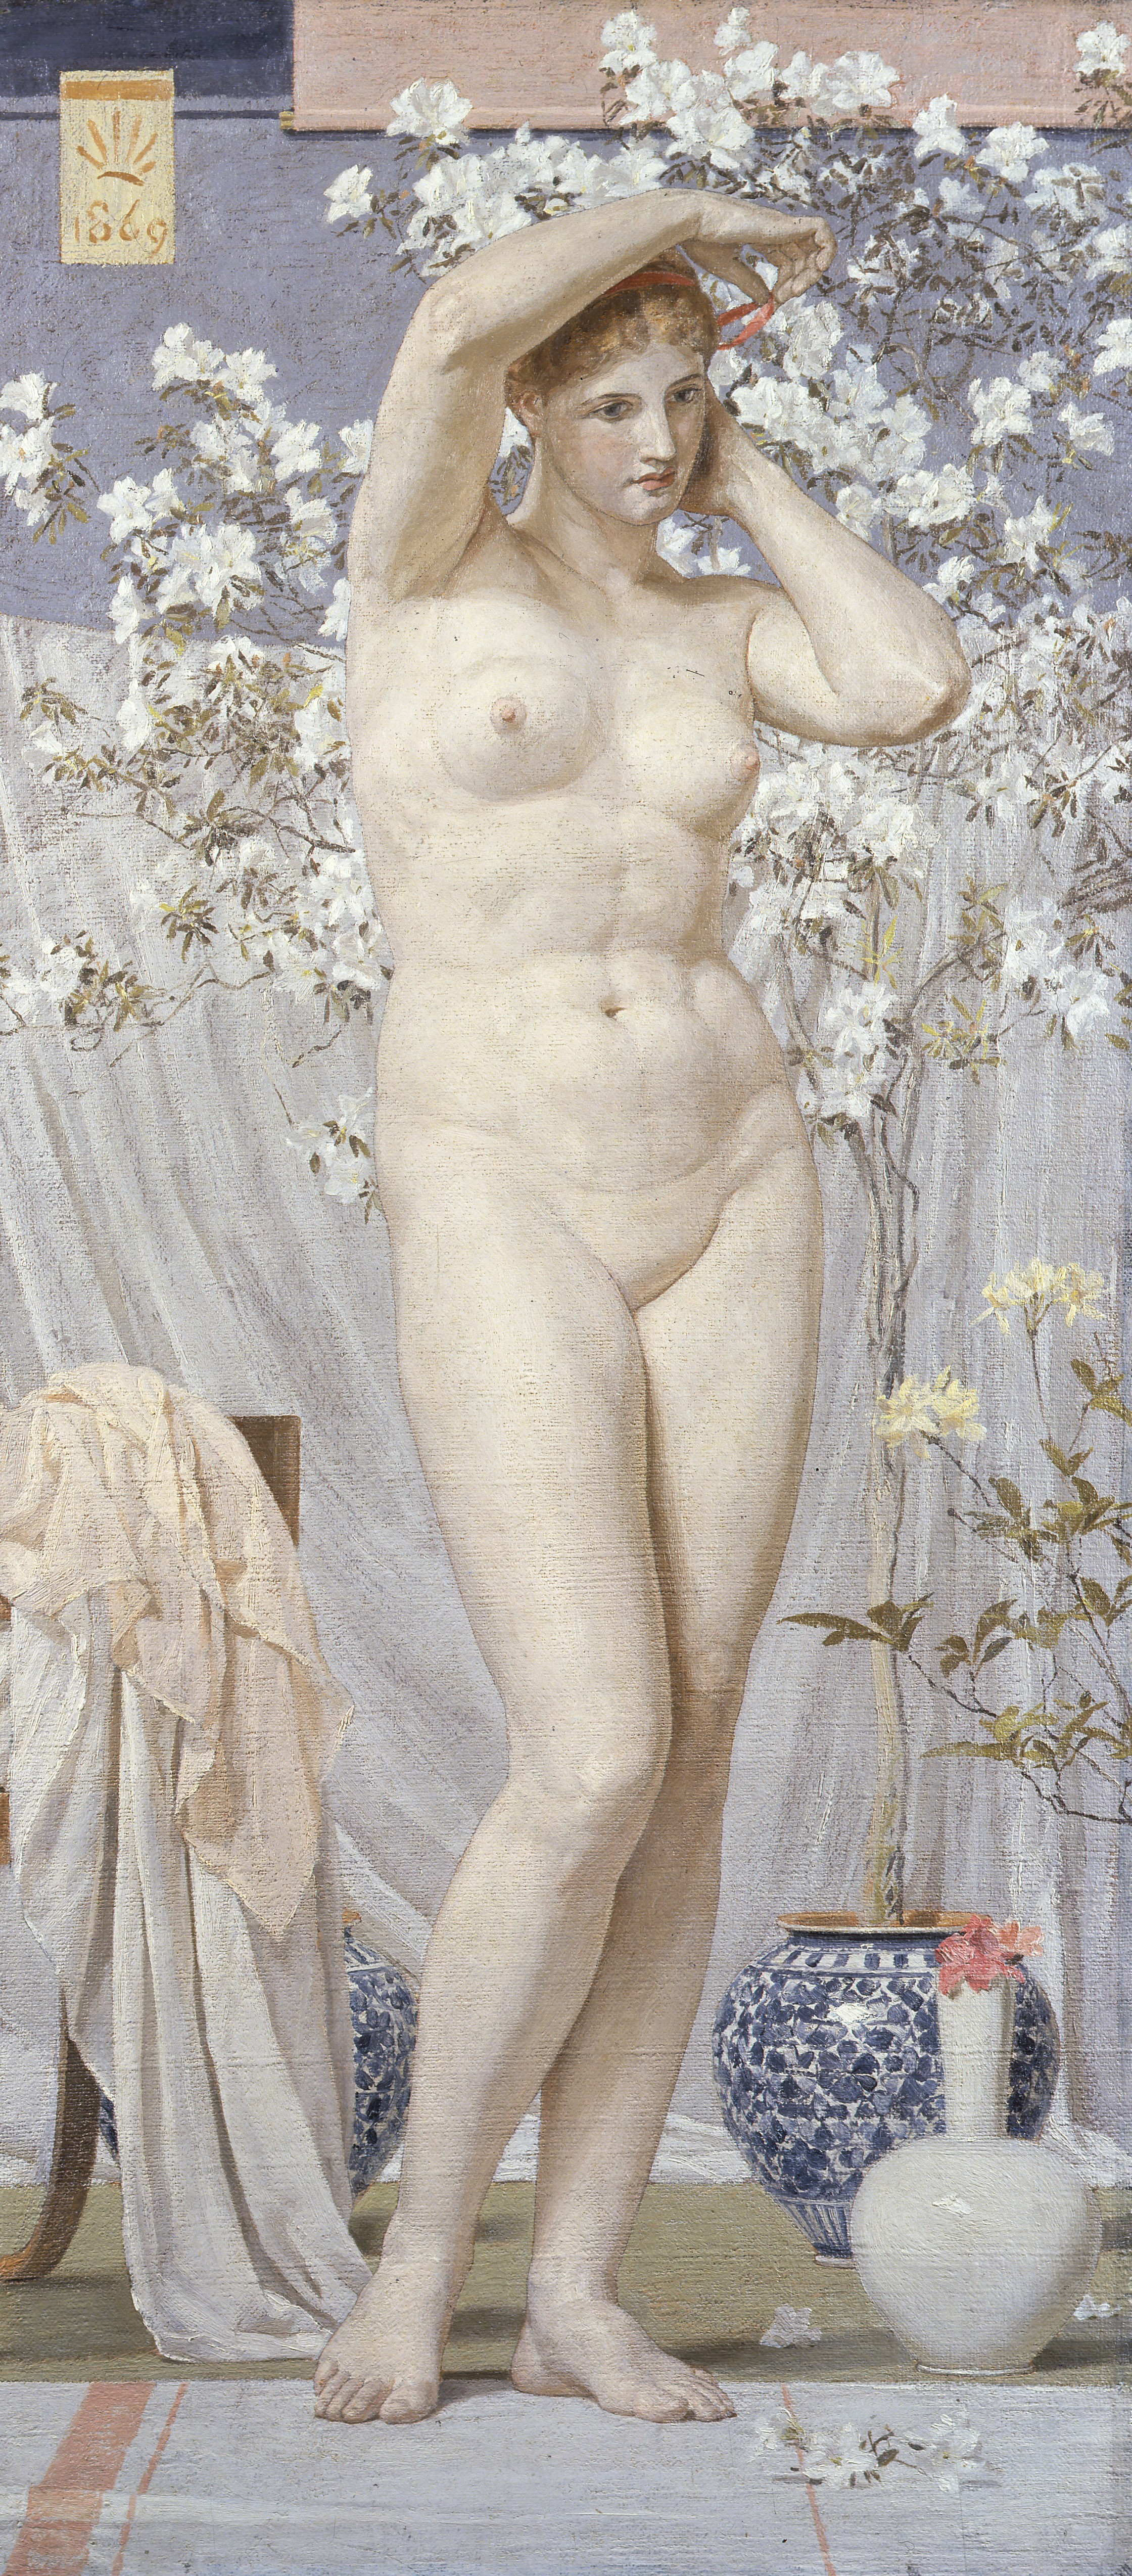 Albert Moore: Of Beauty and Aesthetics